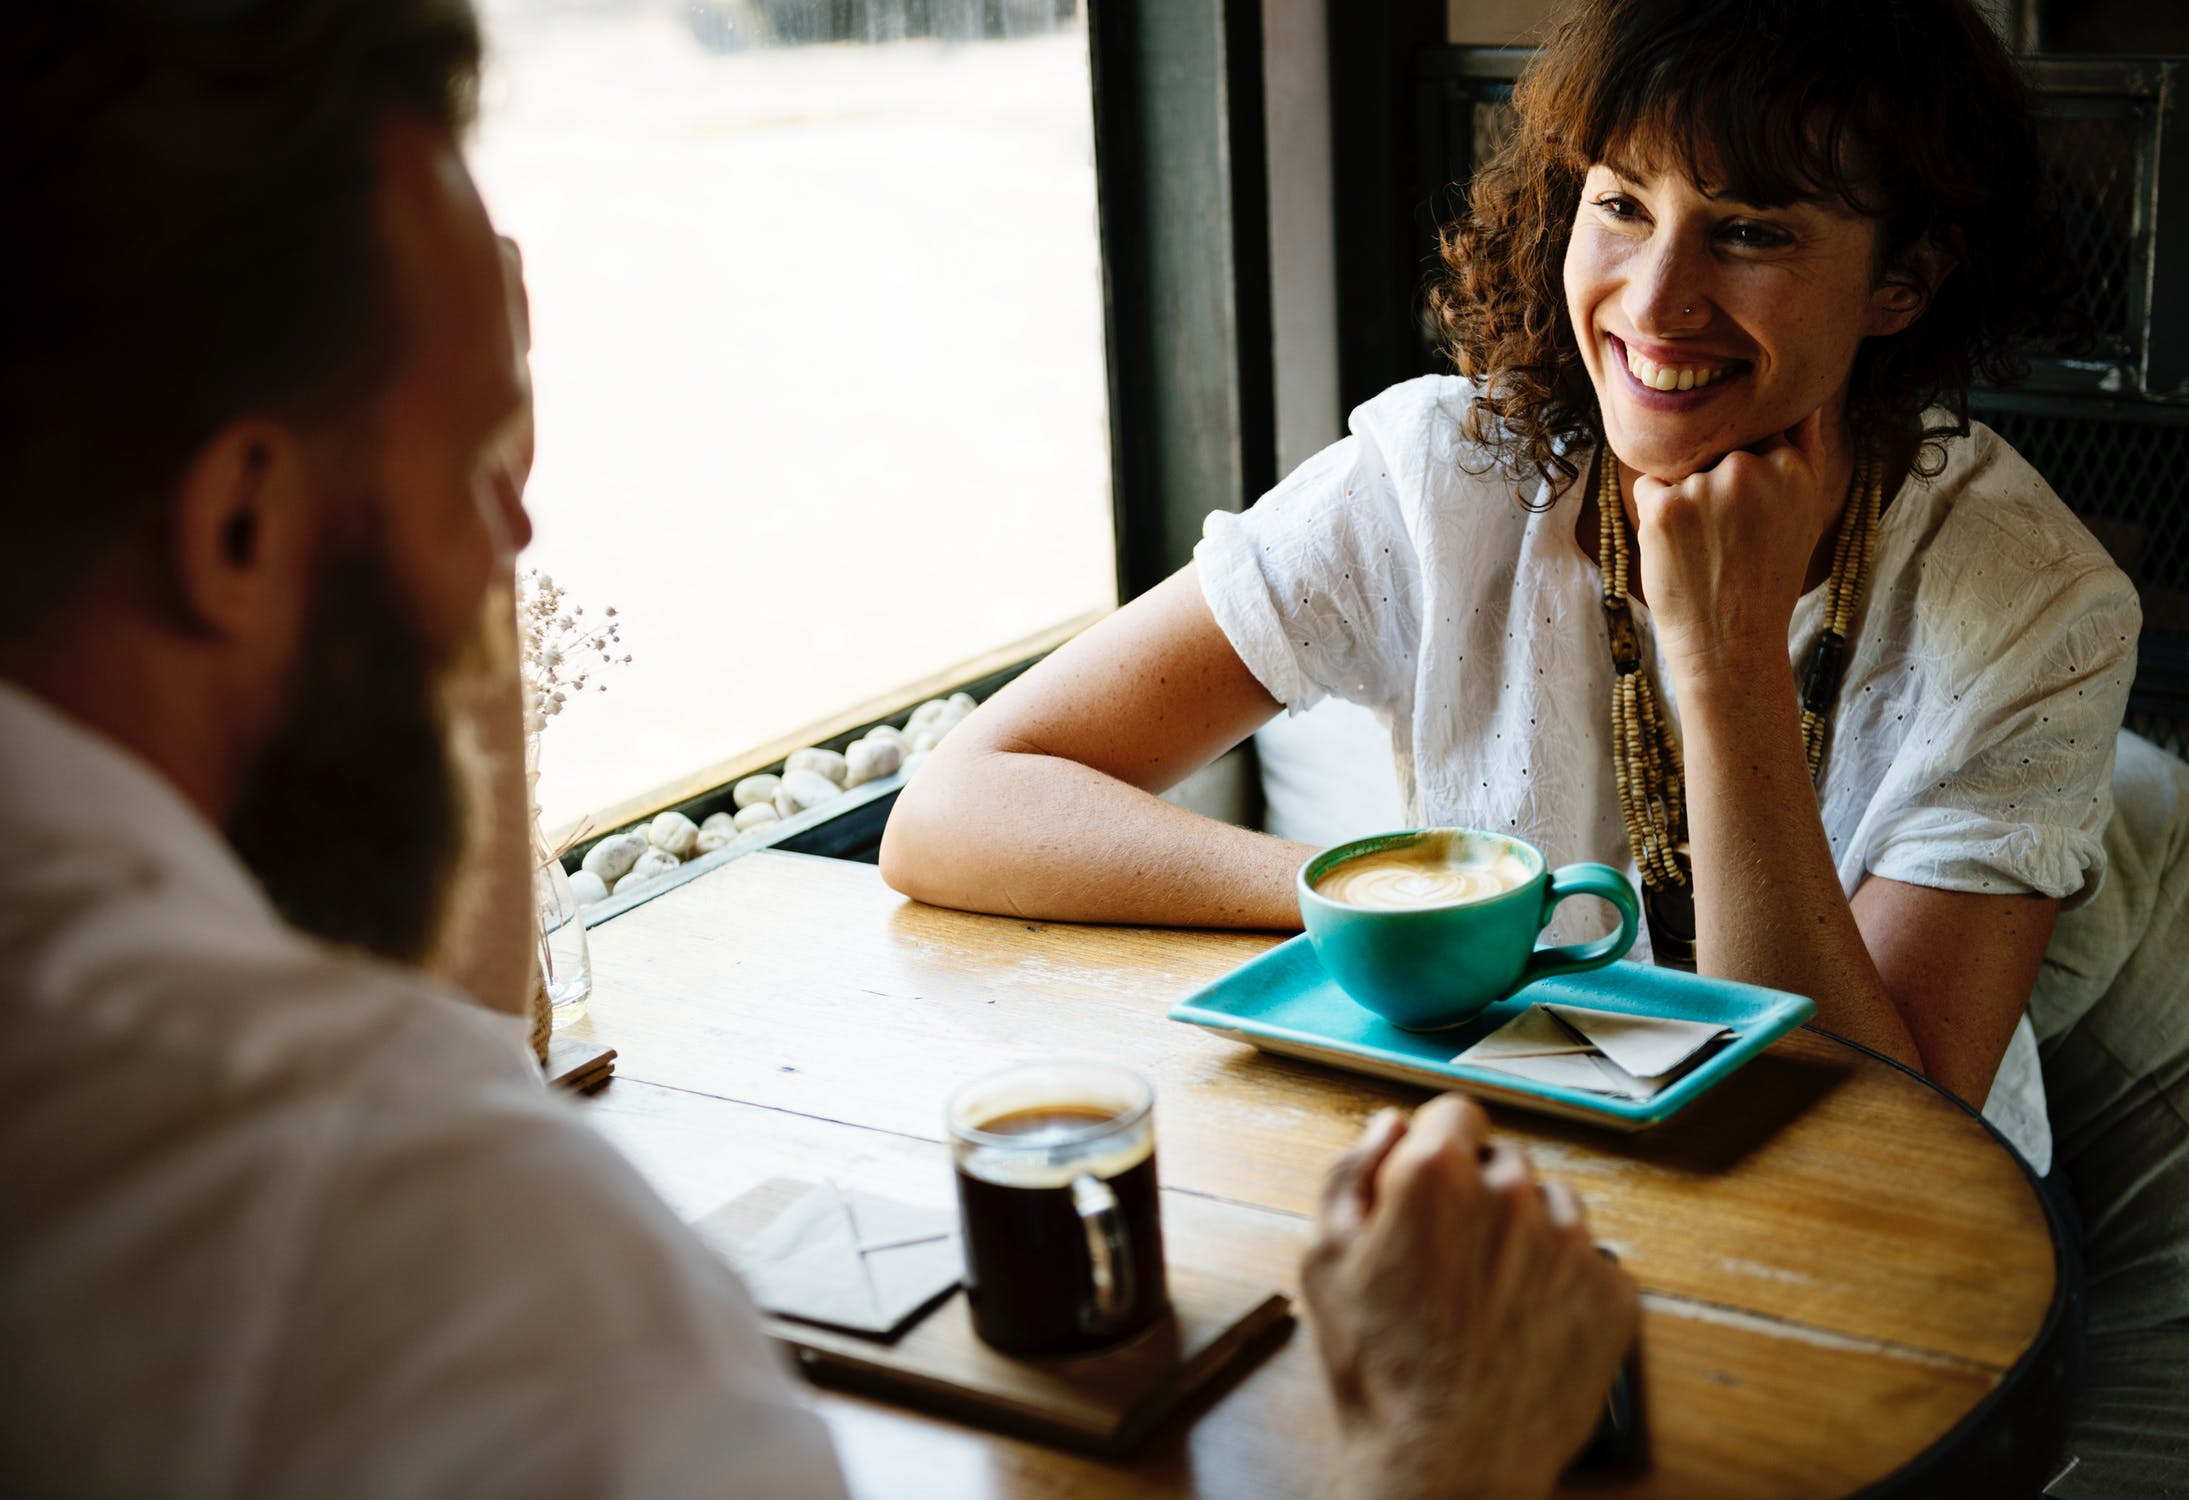 Begin dating after breaking up from a serious relationship